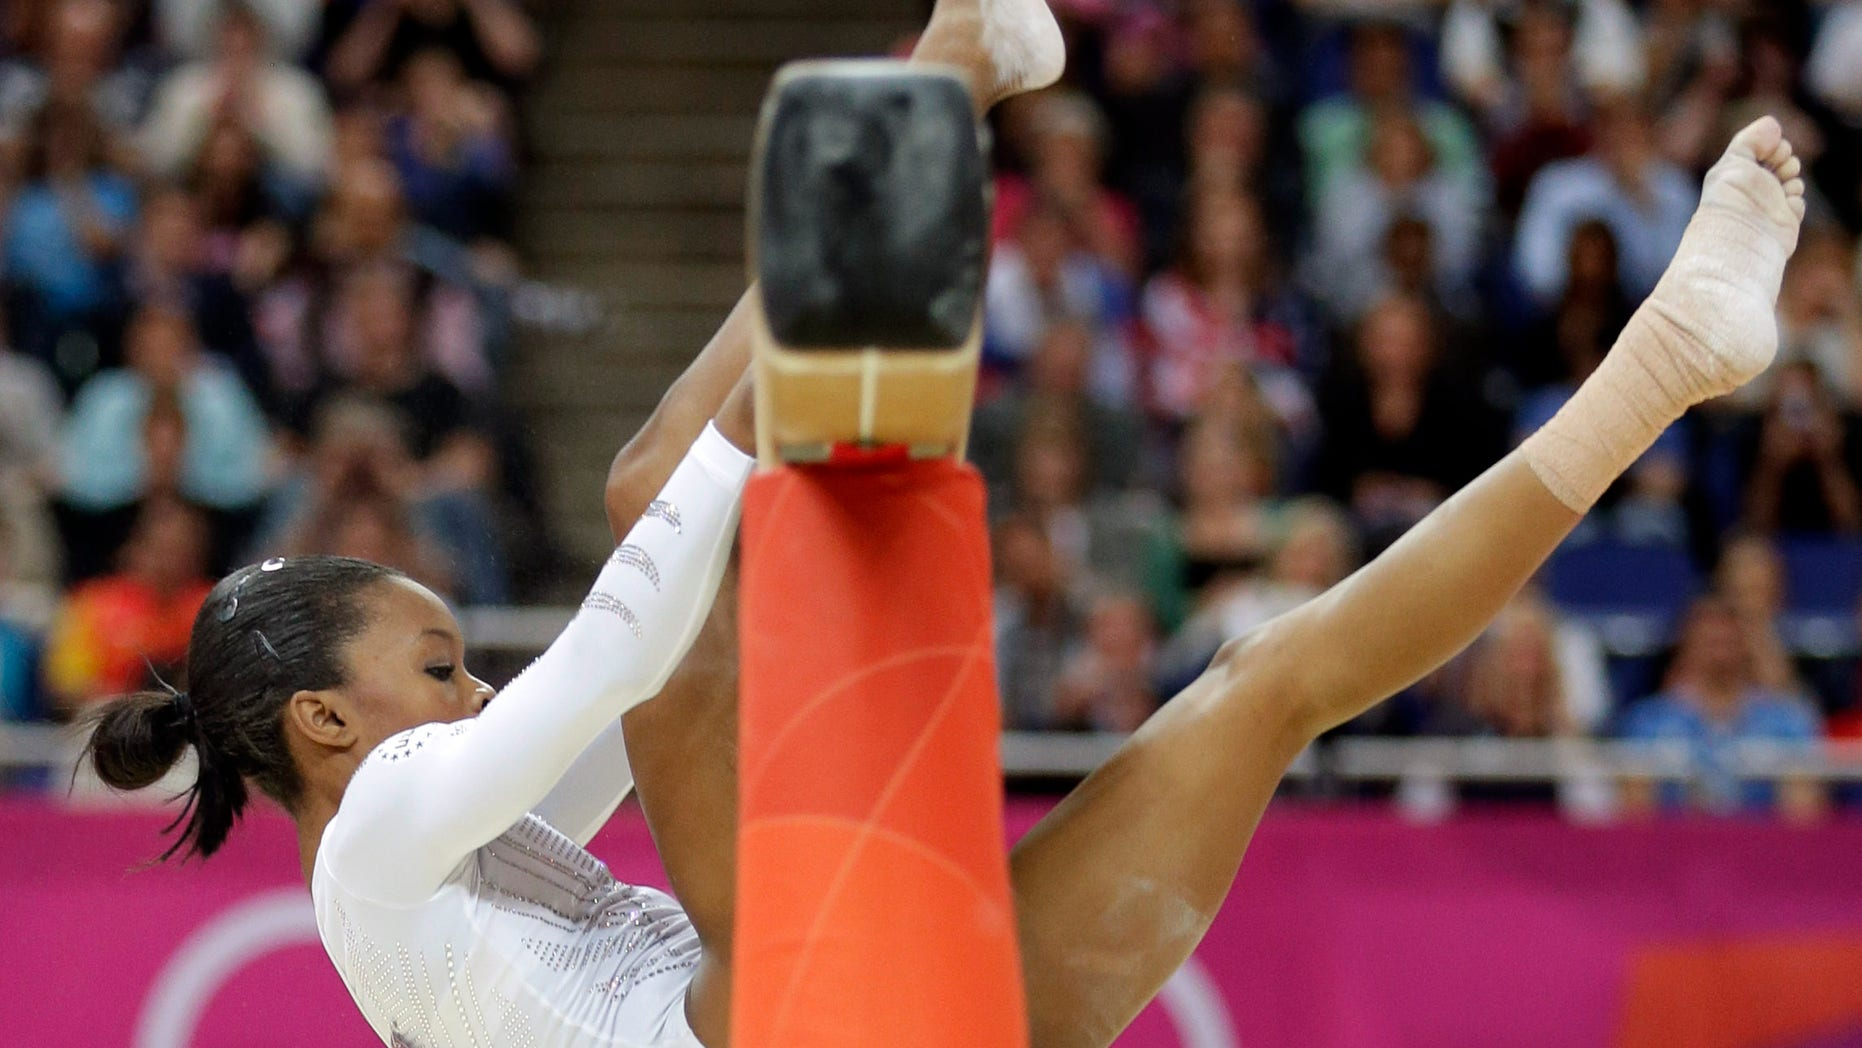 U.S. gymnast Gabrielle Douglas loses her balance and hangs onto the balance beam during the artistic gymnastics women's apparatus finals at the 2012 Summer Olympics, Tuesday, Aug. 7, 2012, in London. (AP Photo/Gregory Bull)